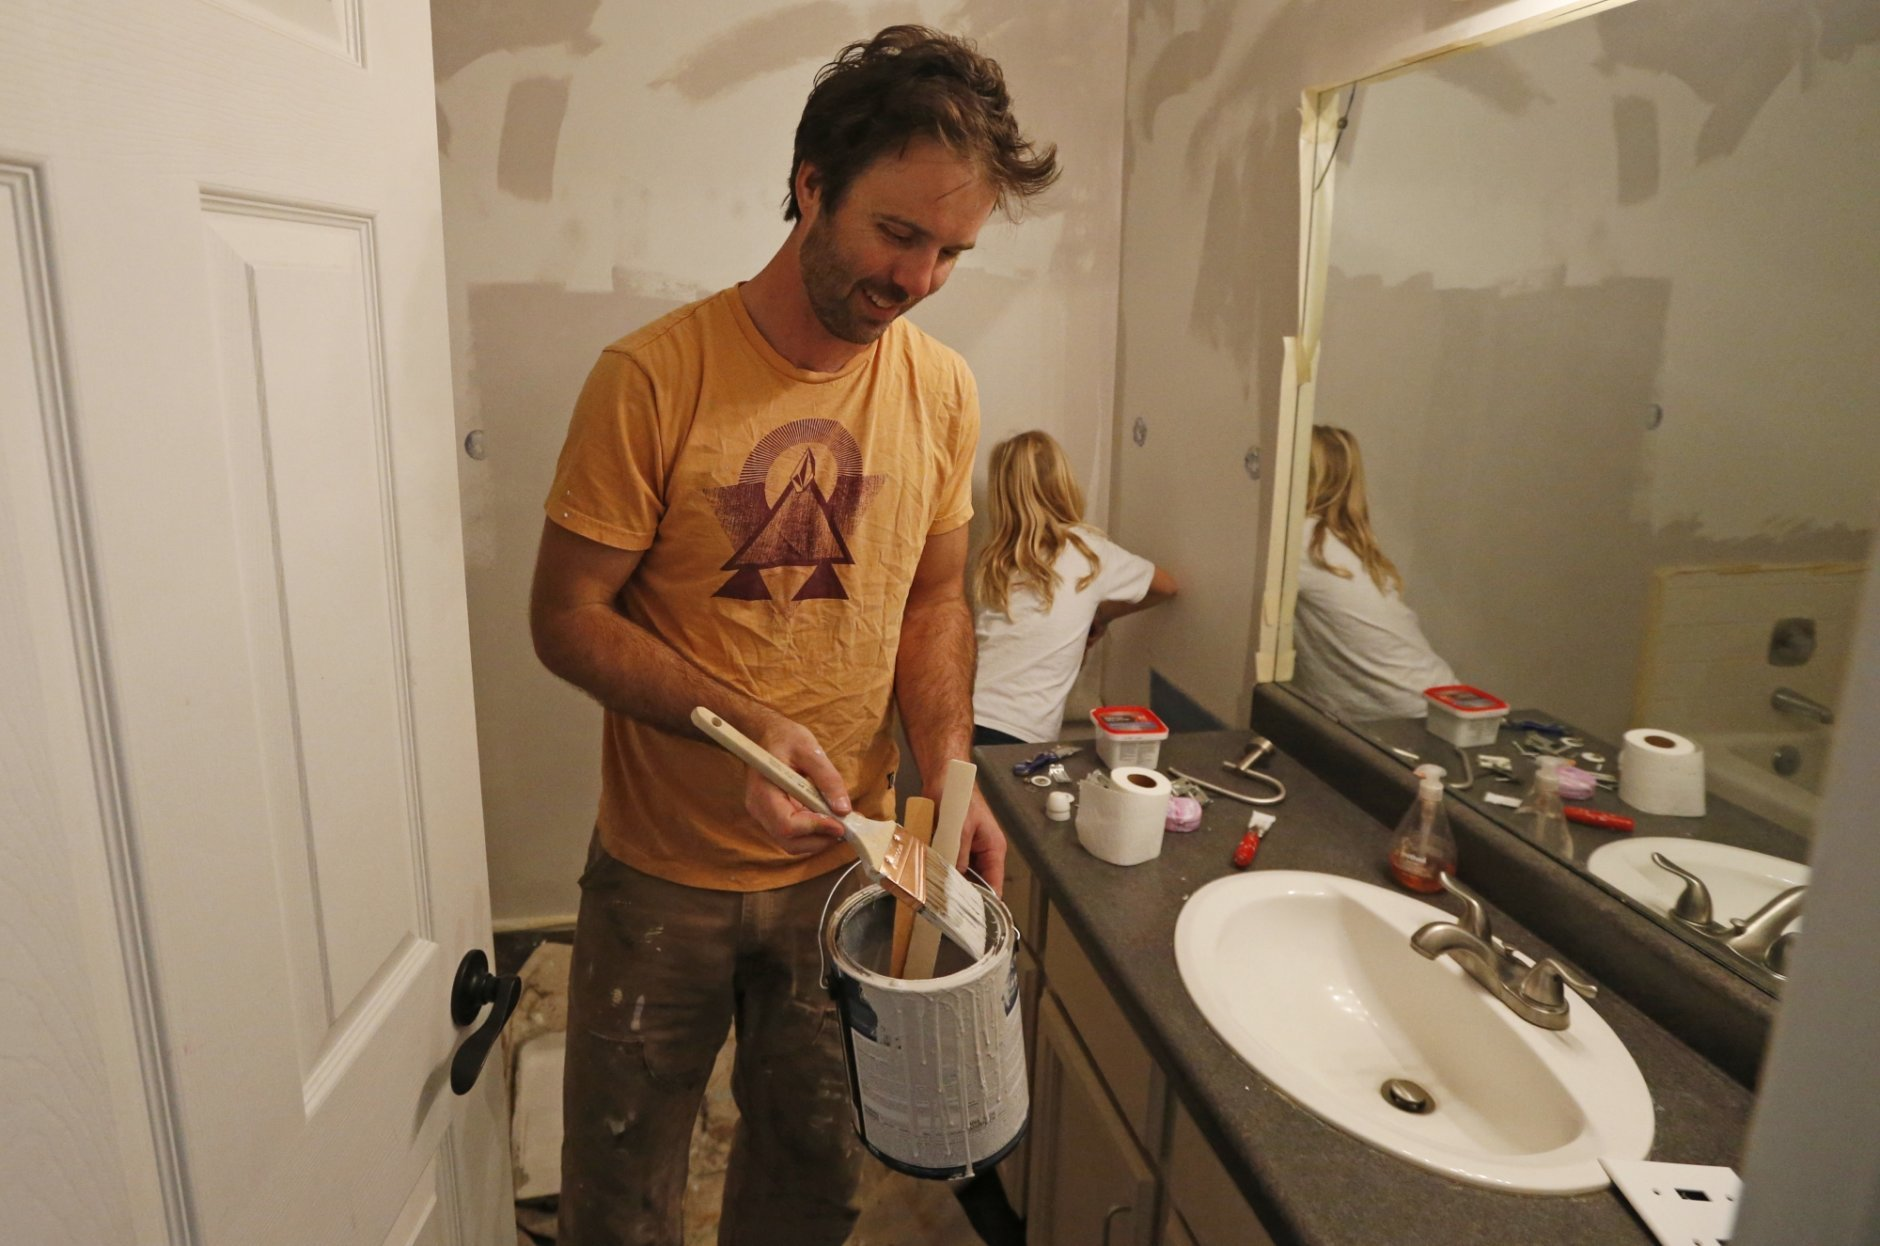 Federal contractor Chris Erickson paints his bathroom Friday, Jan., 4, 2019, in North Salt Lake, Utah. Erickson says he'll run out of vacation days if the shutdown continues. The father of three from Salt Lake City will then crack into his savings, and he'll likely postpone a 14th wedding anniversary trip with his wife to a cabin. Erickson said he likely won't get the chance for reimbursement for the lost days because he's a contractor. (AP Photo/Rick Bowmer)